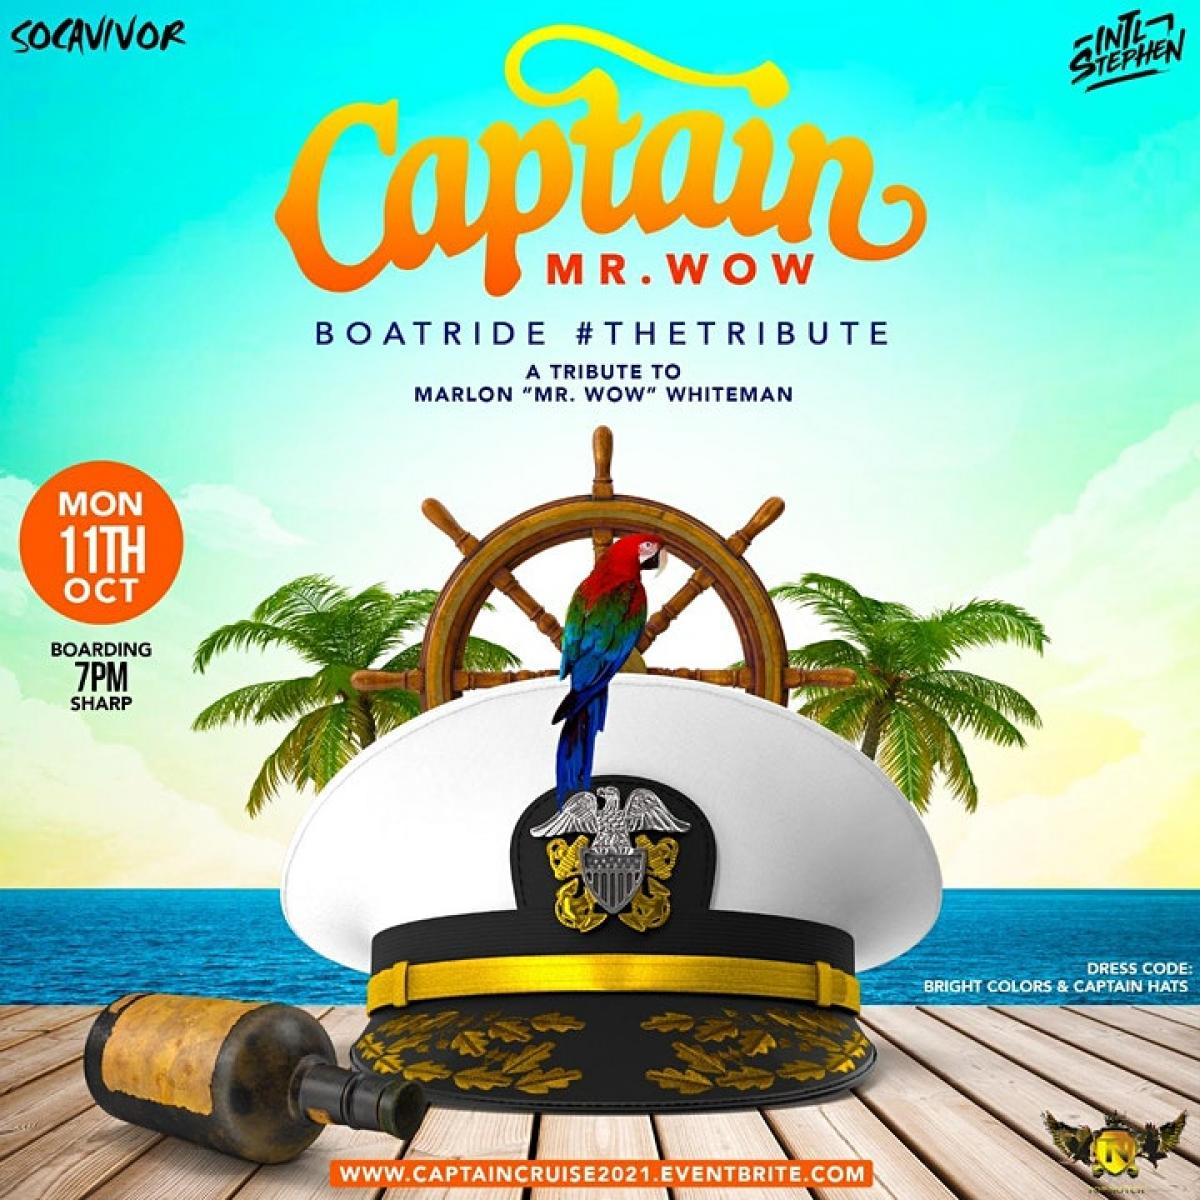 Captain Cruise - Bright Colors & Captain Hats flyer or graphic.